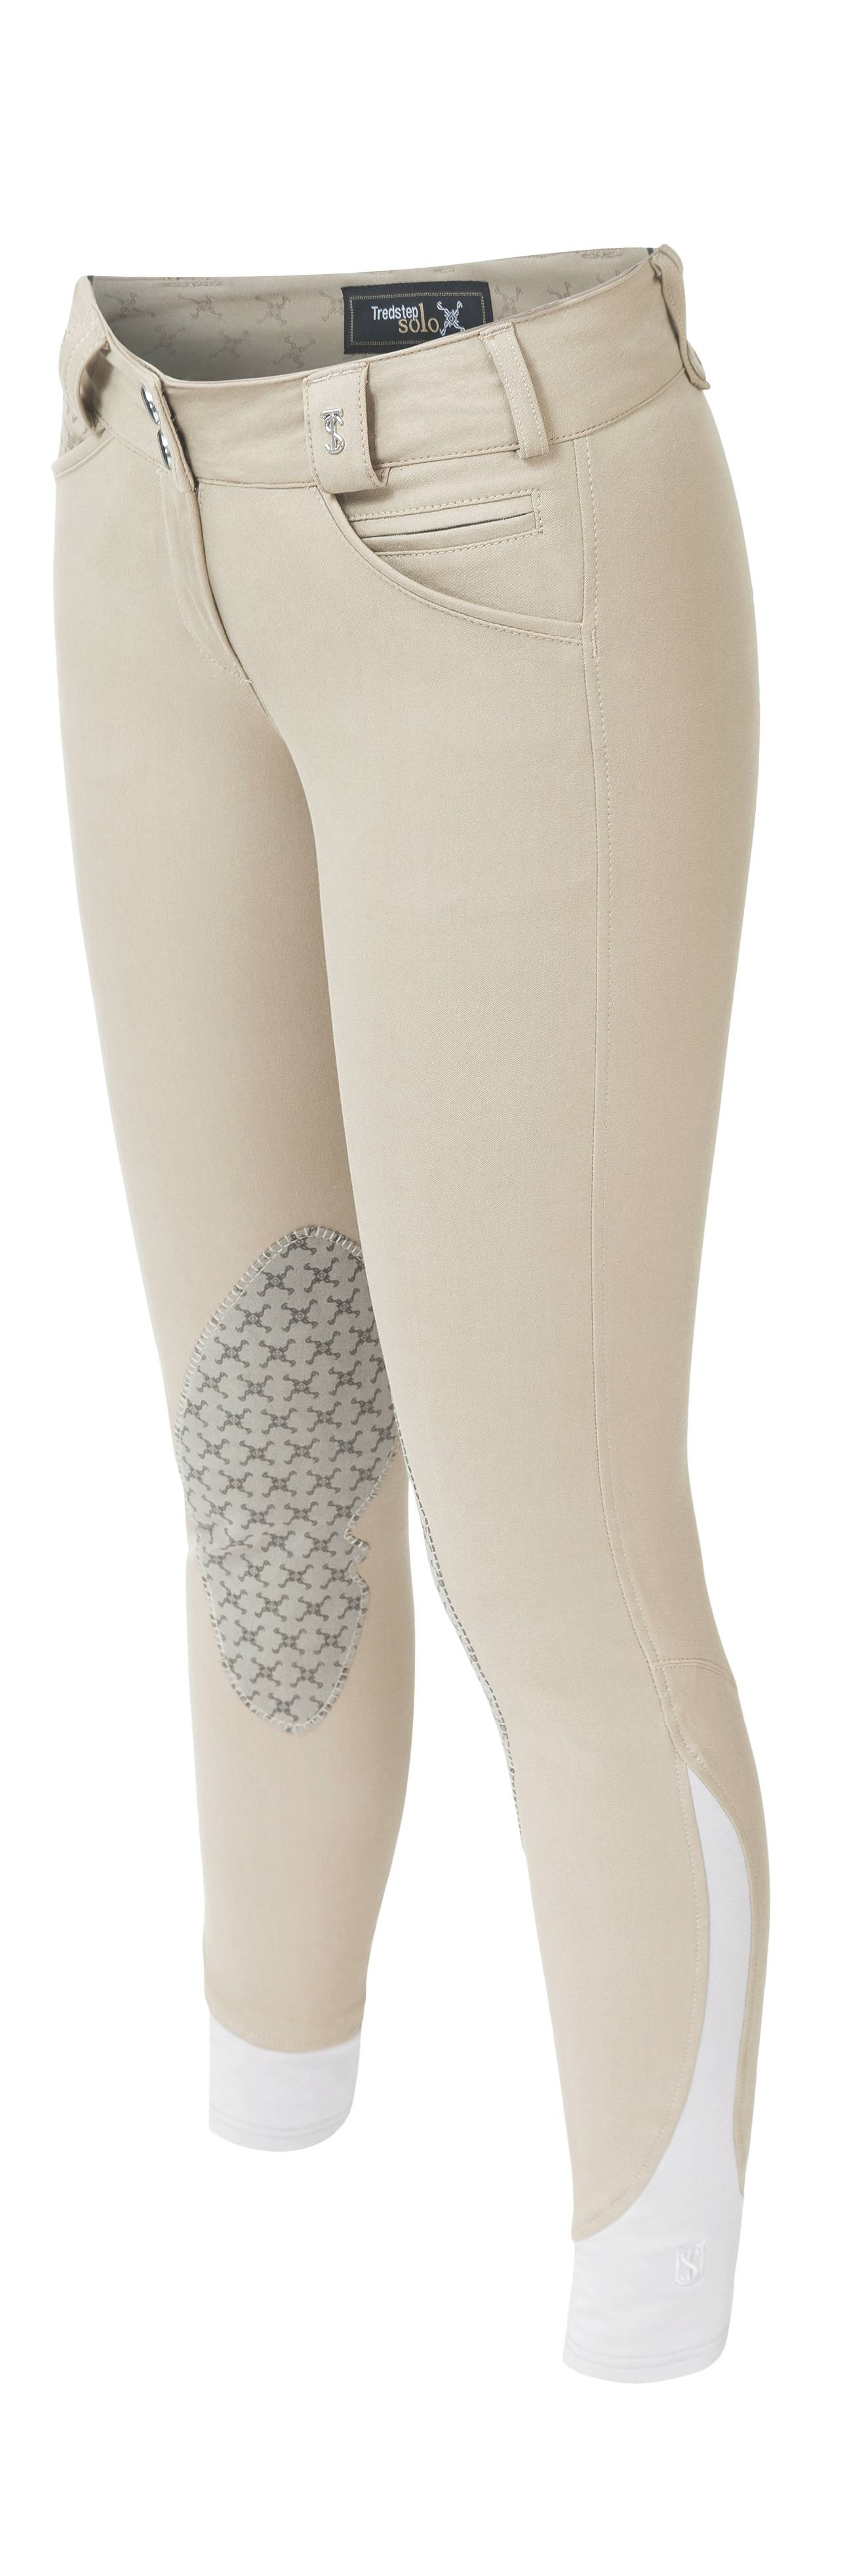 Tredstep Solo Grip Knee Patch Breech- Ladies